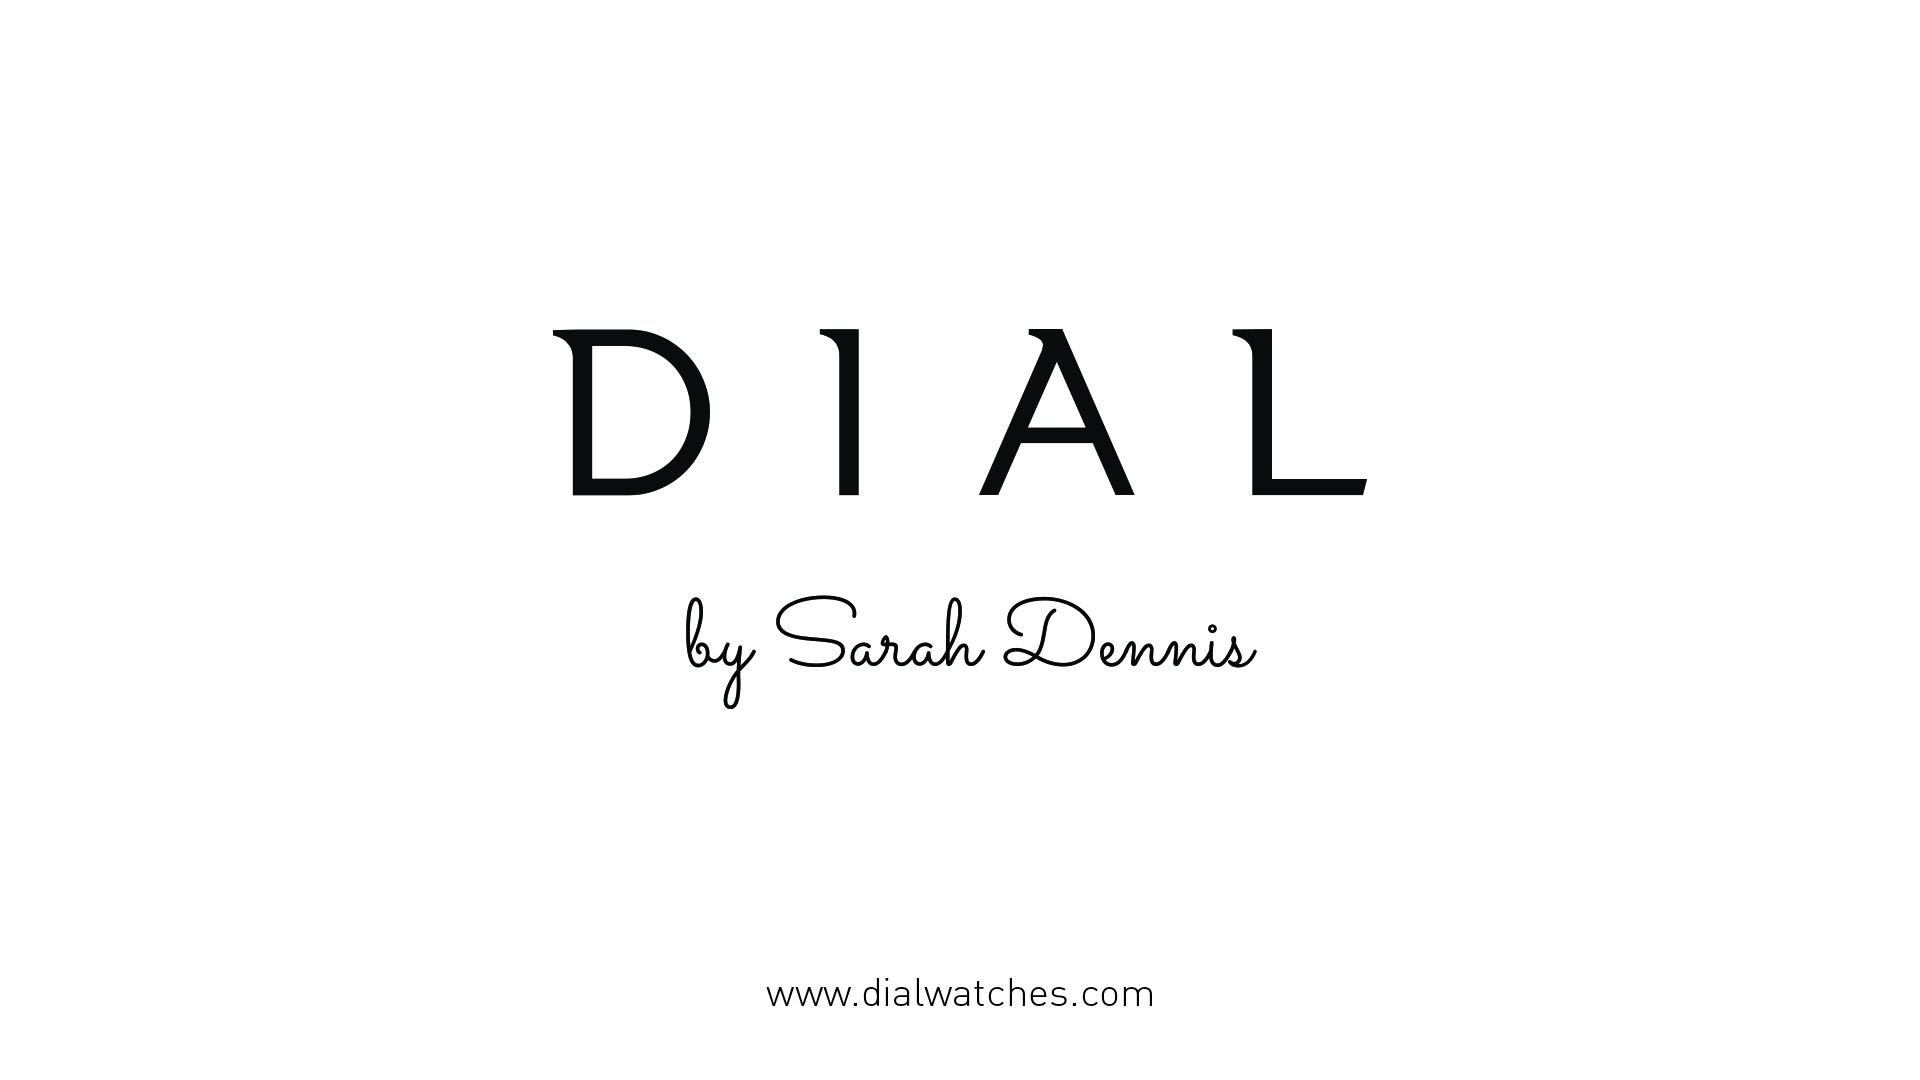 Copy of Dial_LogoWithArtist_Sarah_Bearddesign